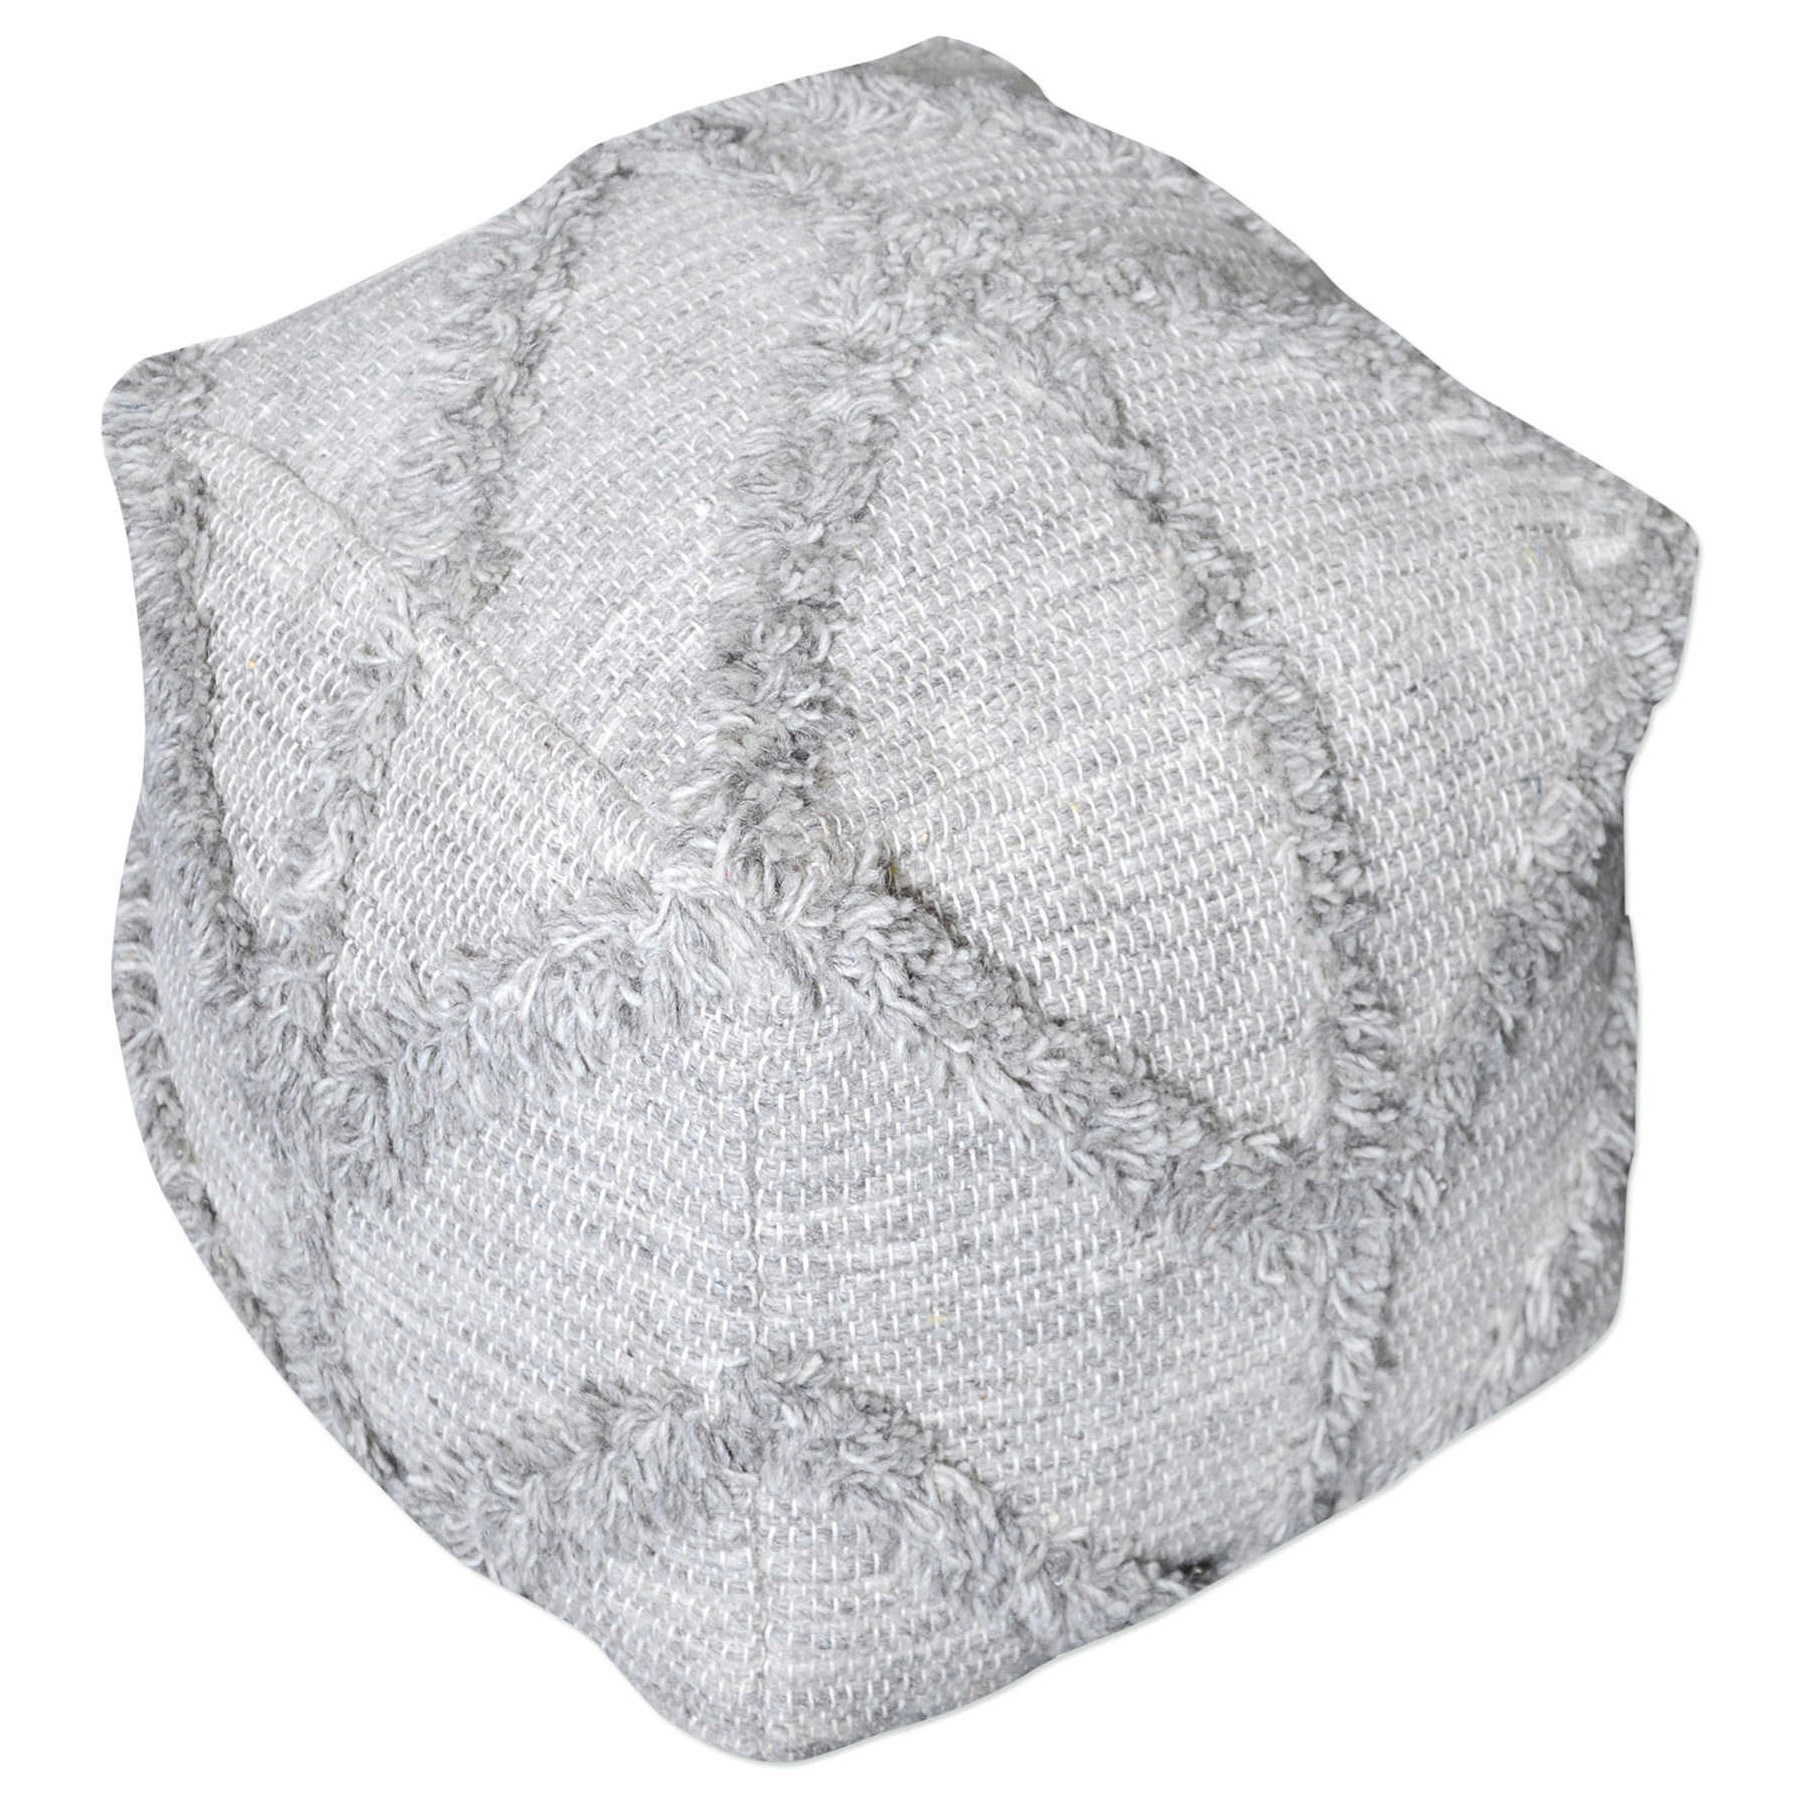 Accent Furniture - Ottomans Olfen Gray Pouf by Uttermost at O'Dunk & O'Bright Furniture